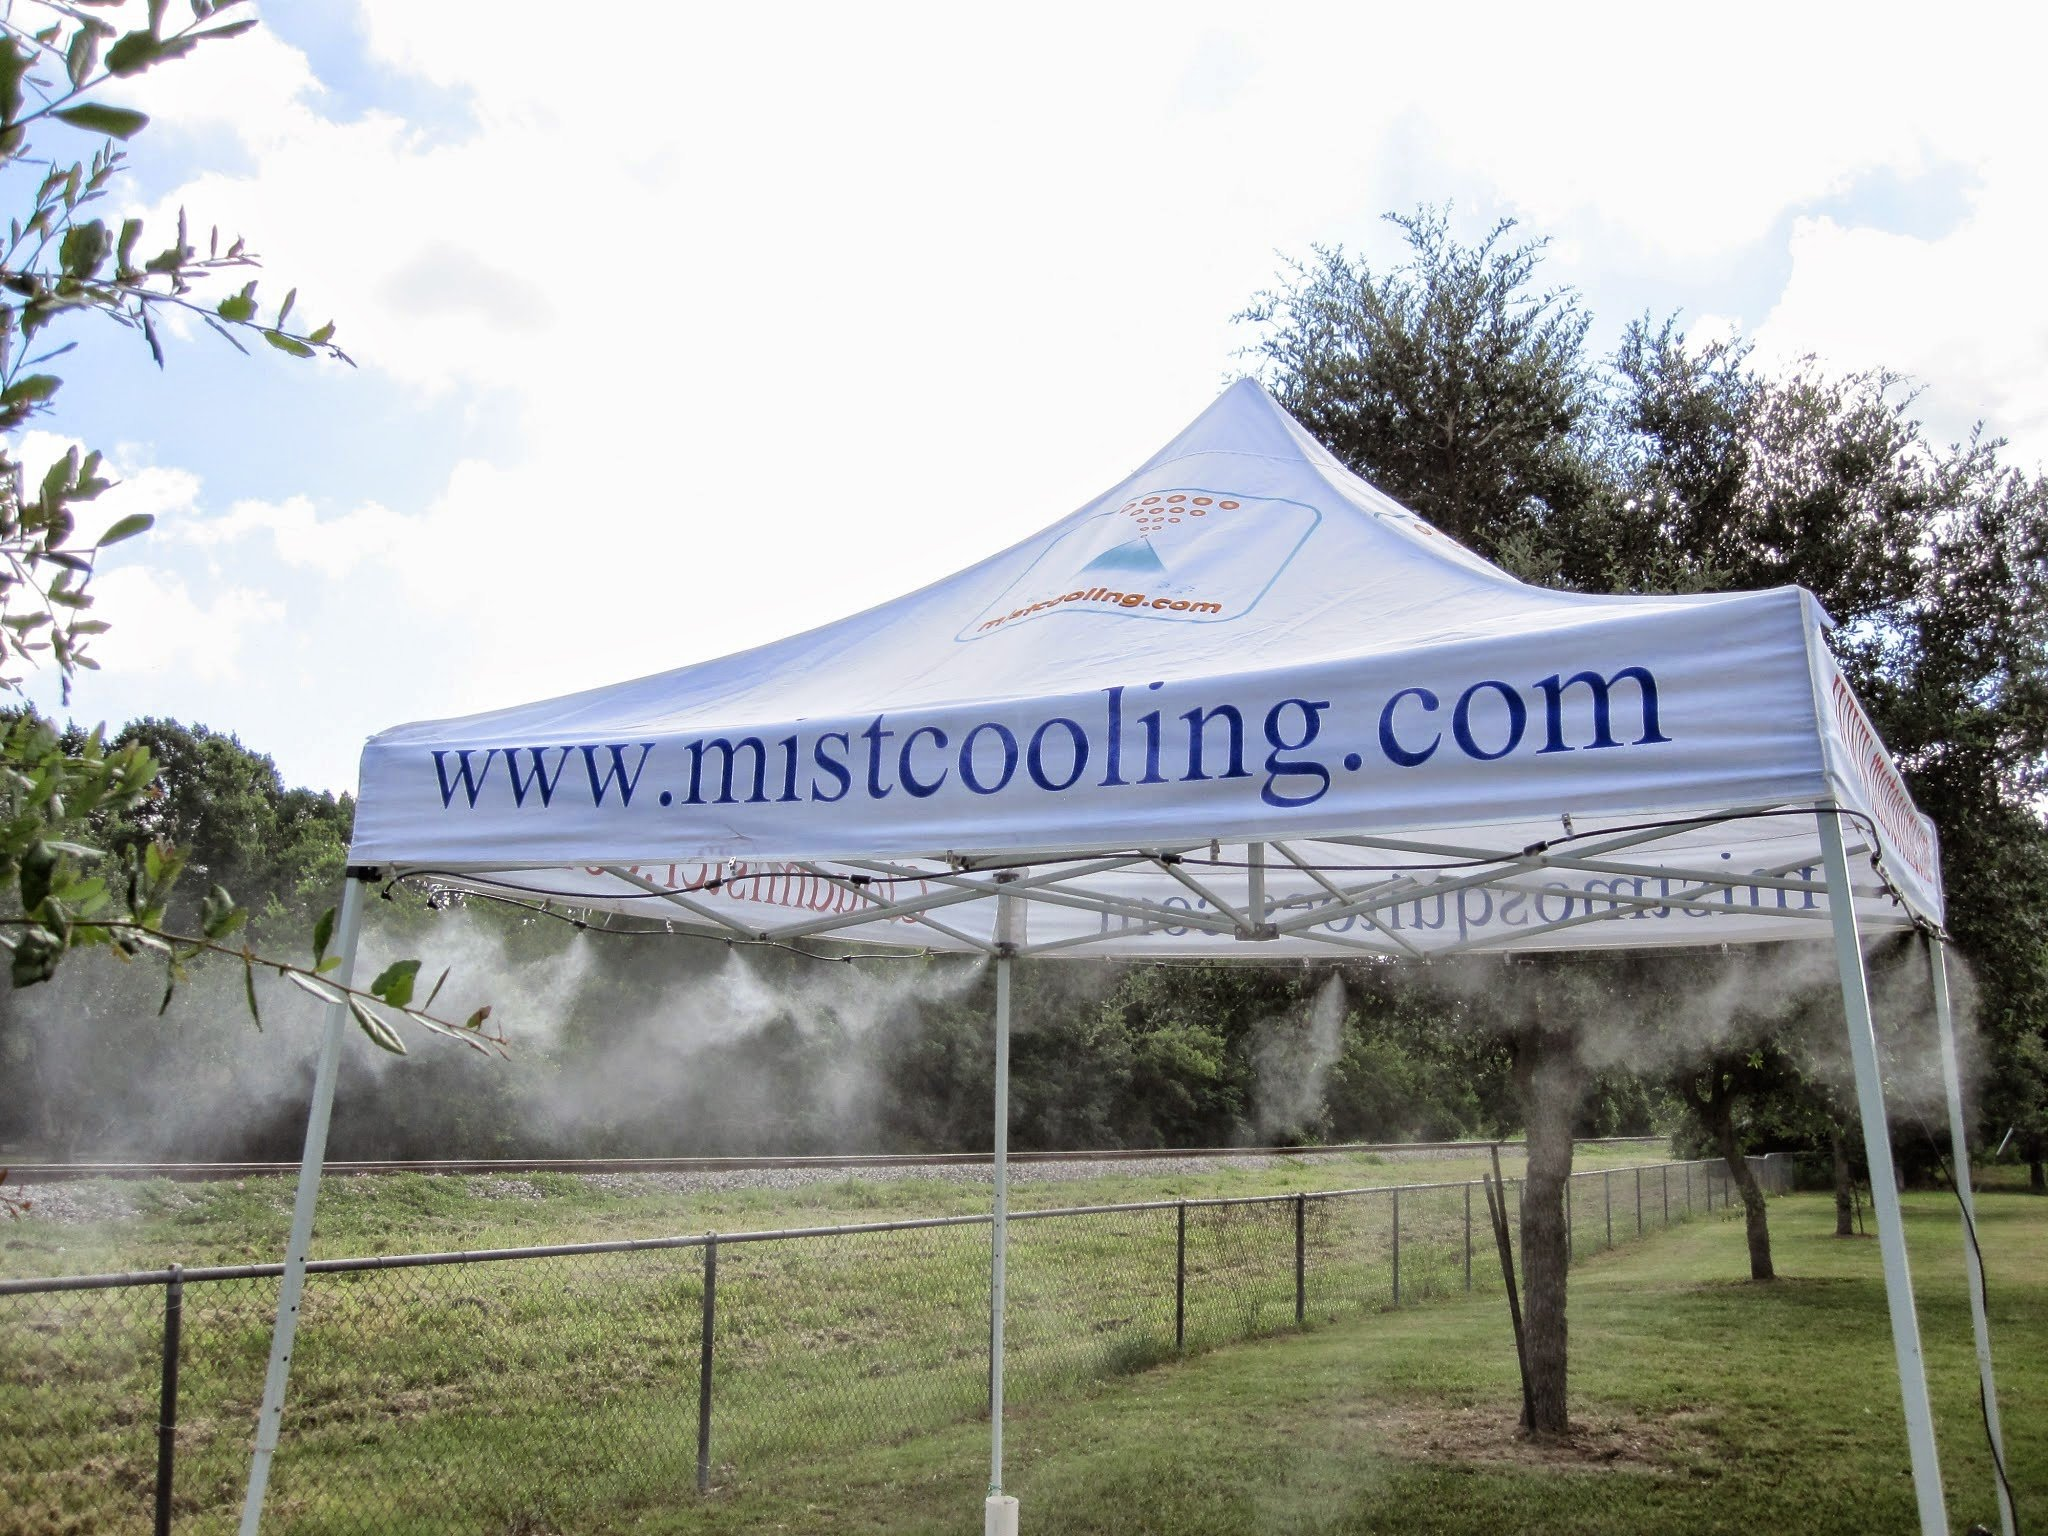 Misting Tent - Tent with Mist system - For Outdoor Events - With Low Pressure Misting System- Easy to Set-Up (White)